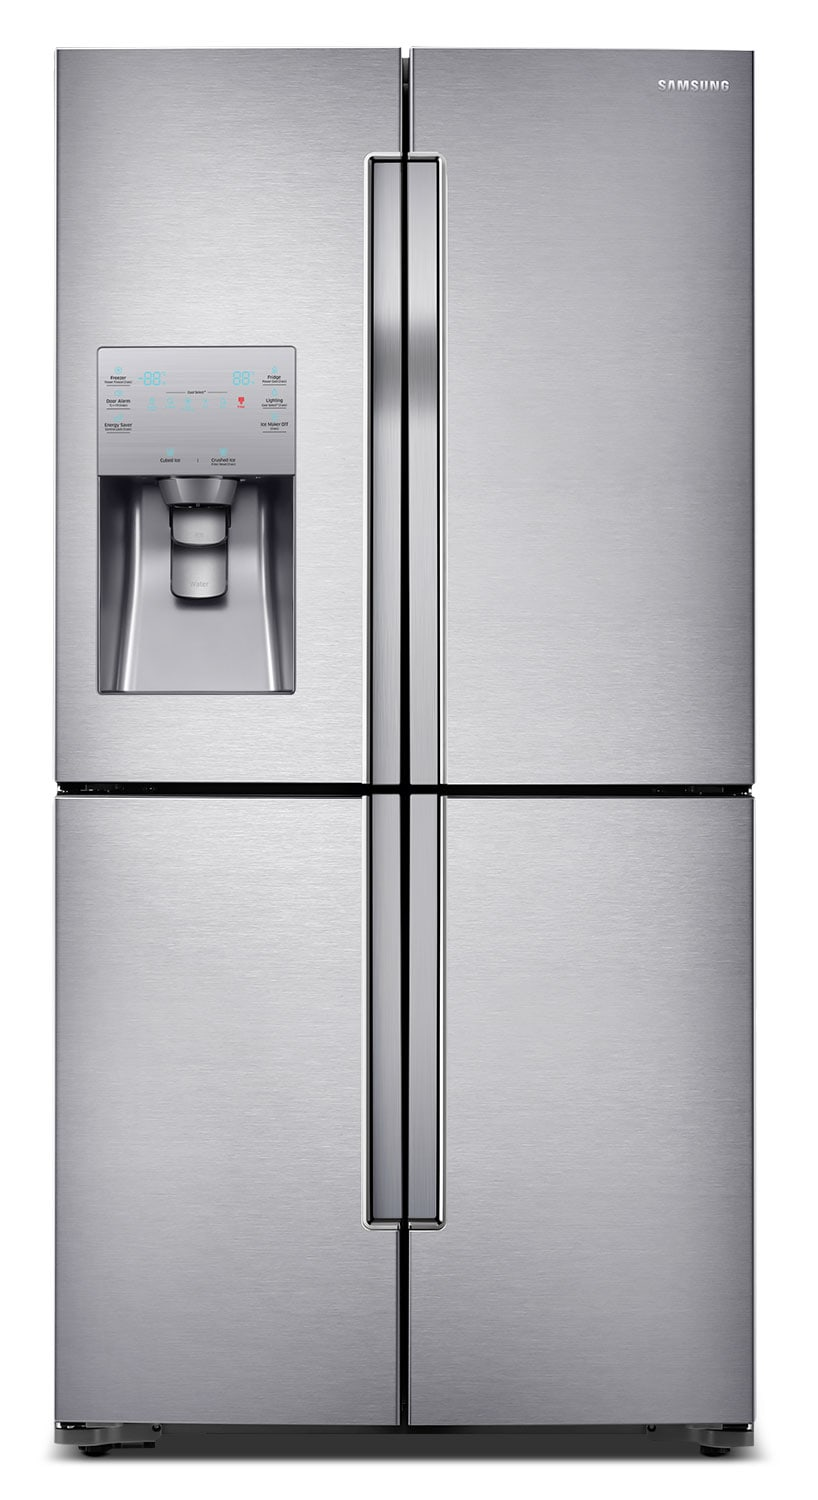 Refrigerators and Freezers - Samsung 22.5 Cu. Ft. French-Door Refrigerator – RF23J9011SR